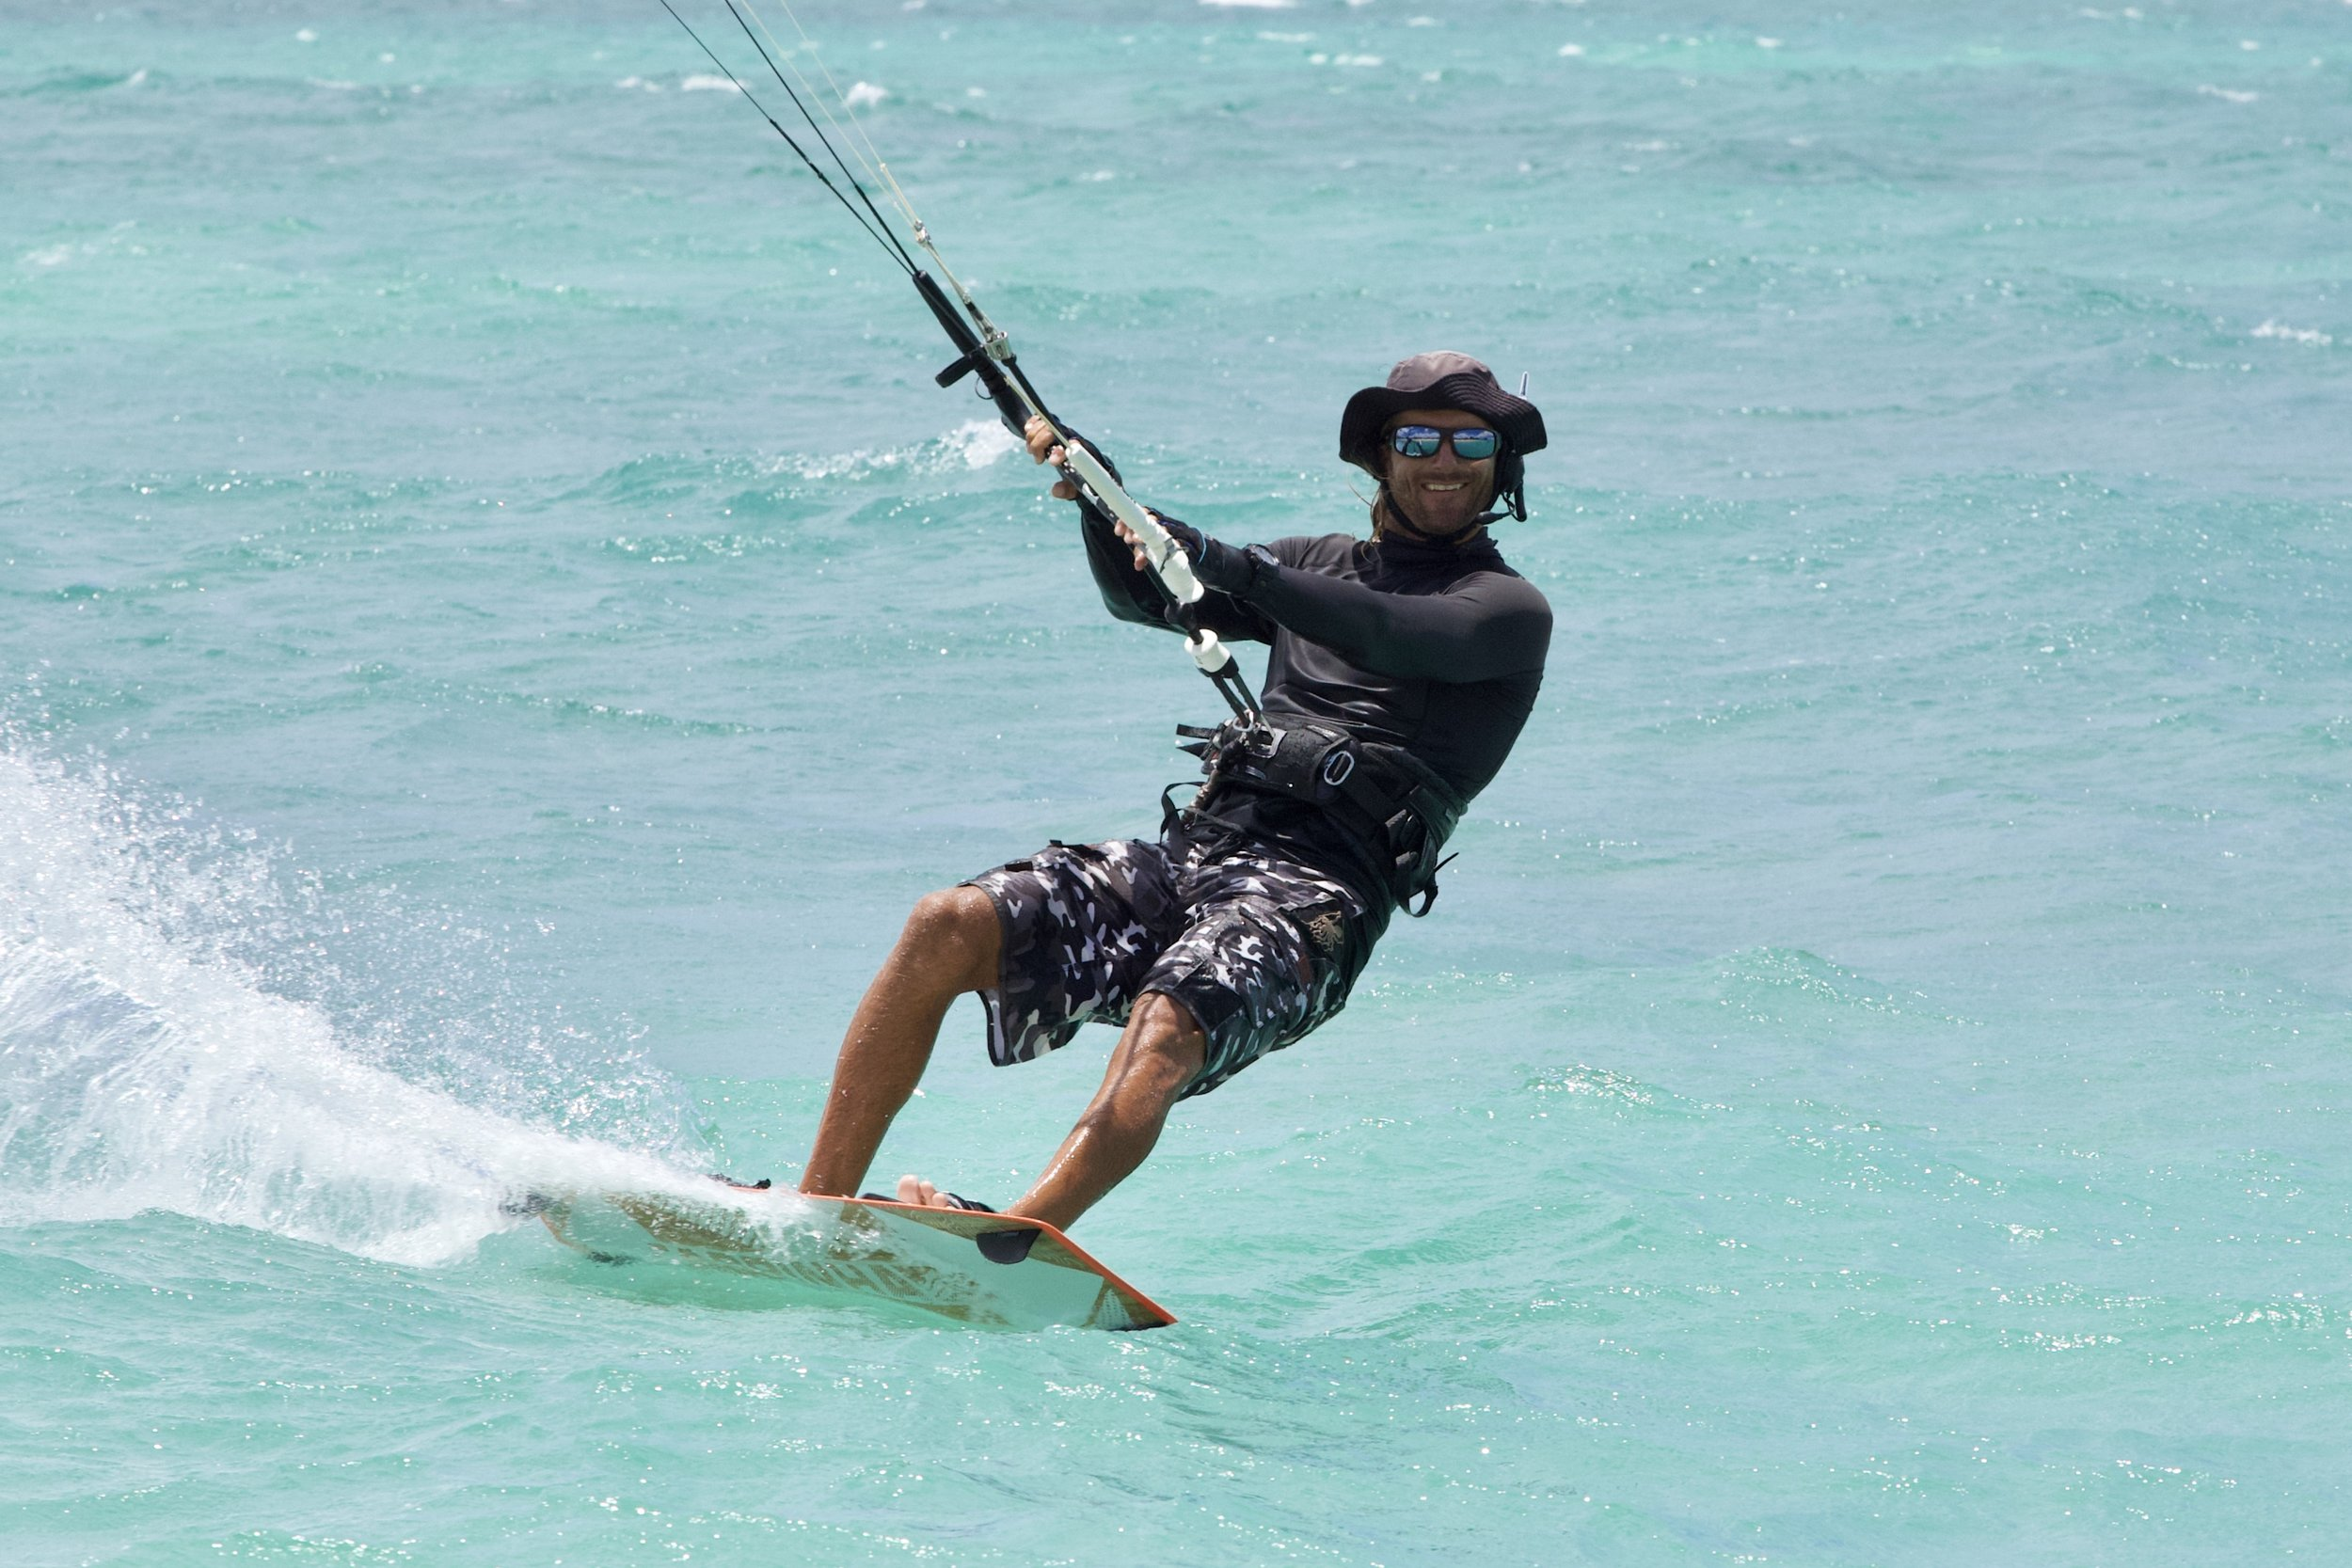 Experience the fun of kitesurfing, smiles for miles guaranteed!